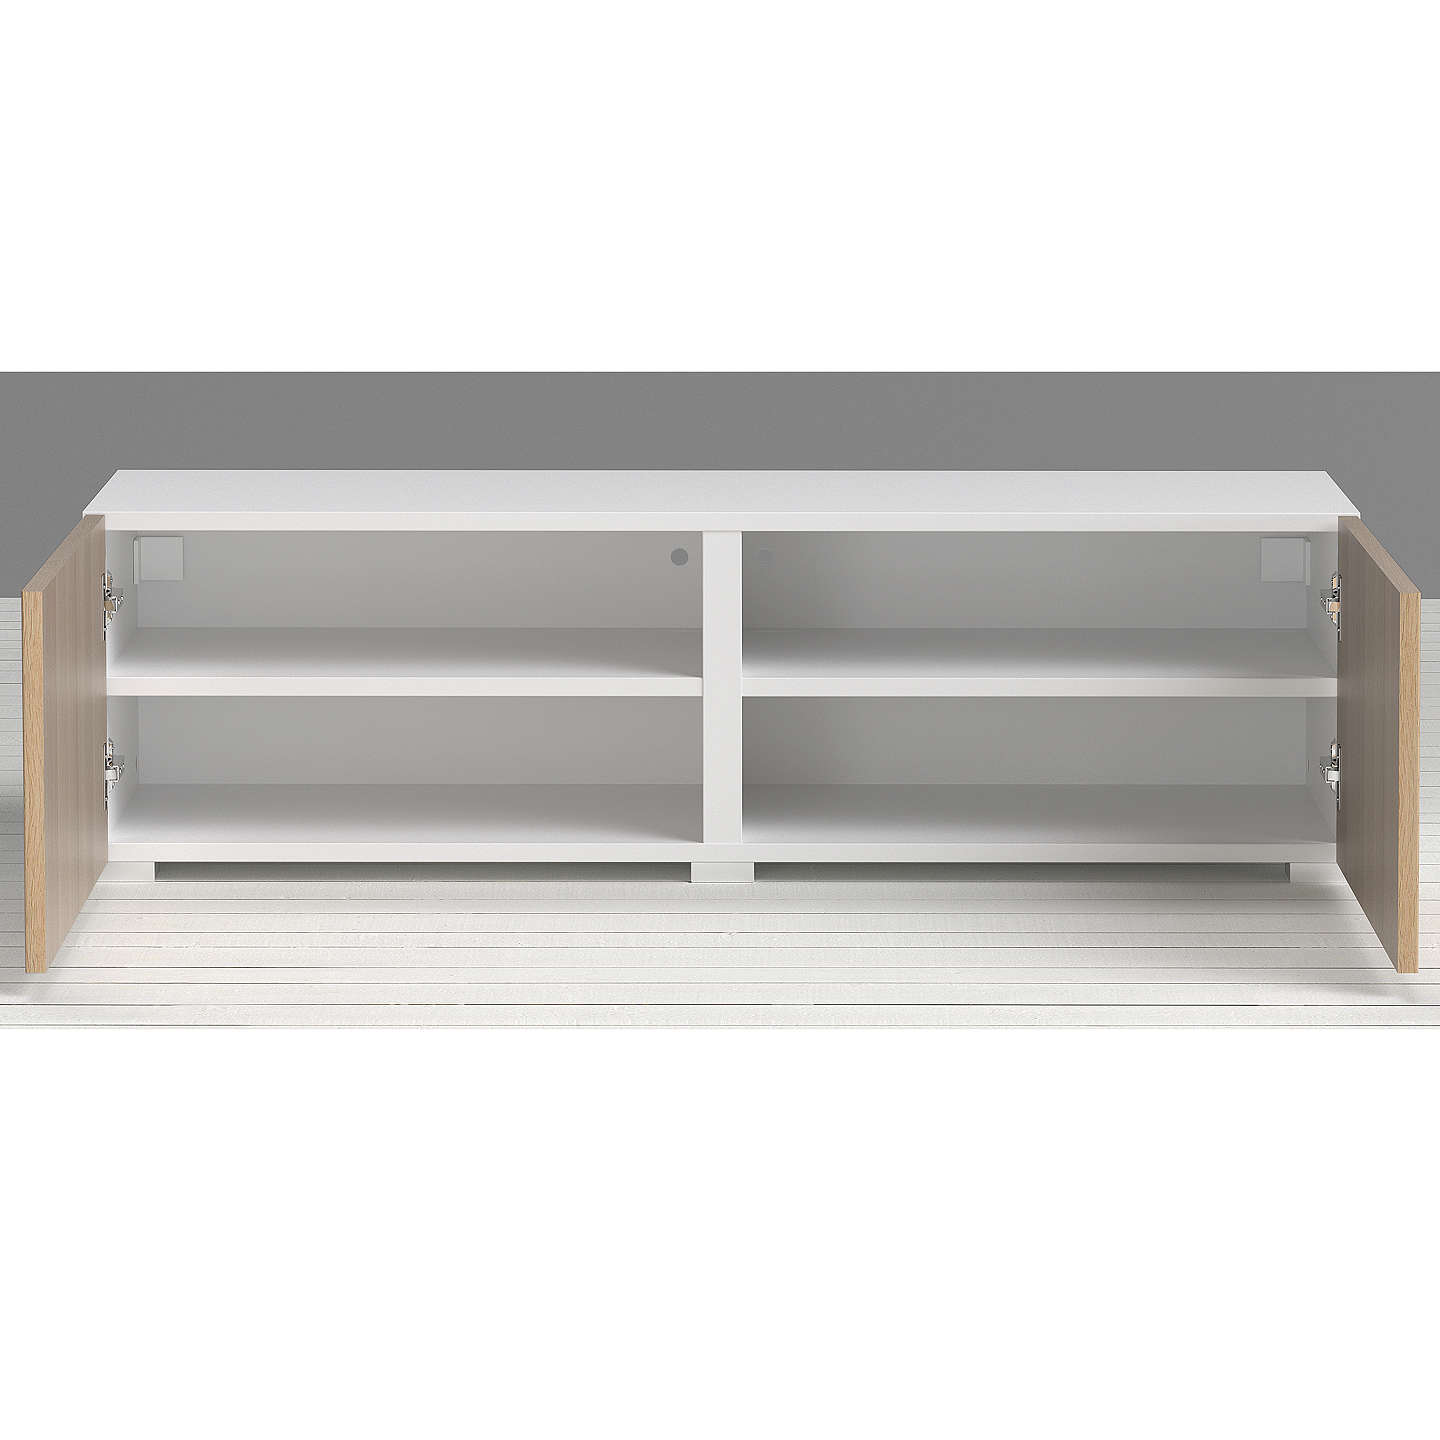 BuyHouse by John Lewis Match Low wide Shelf Unit White & Oak Doors Online at johnlewis.com